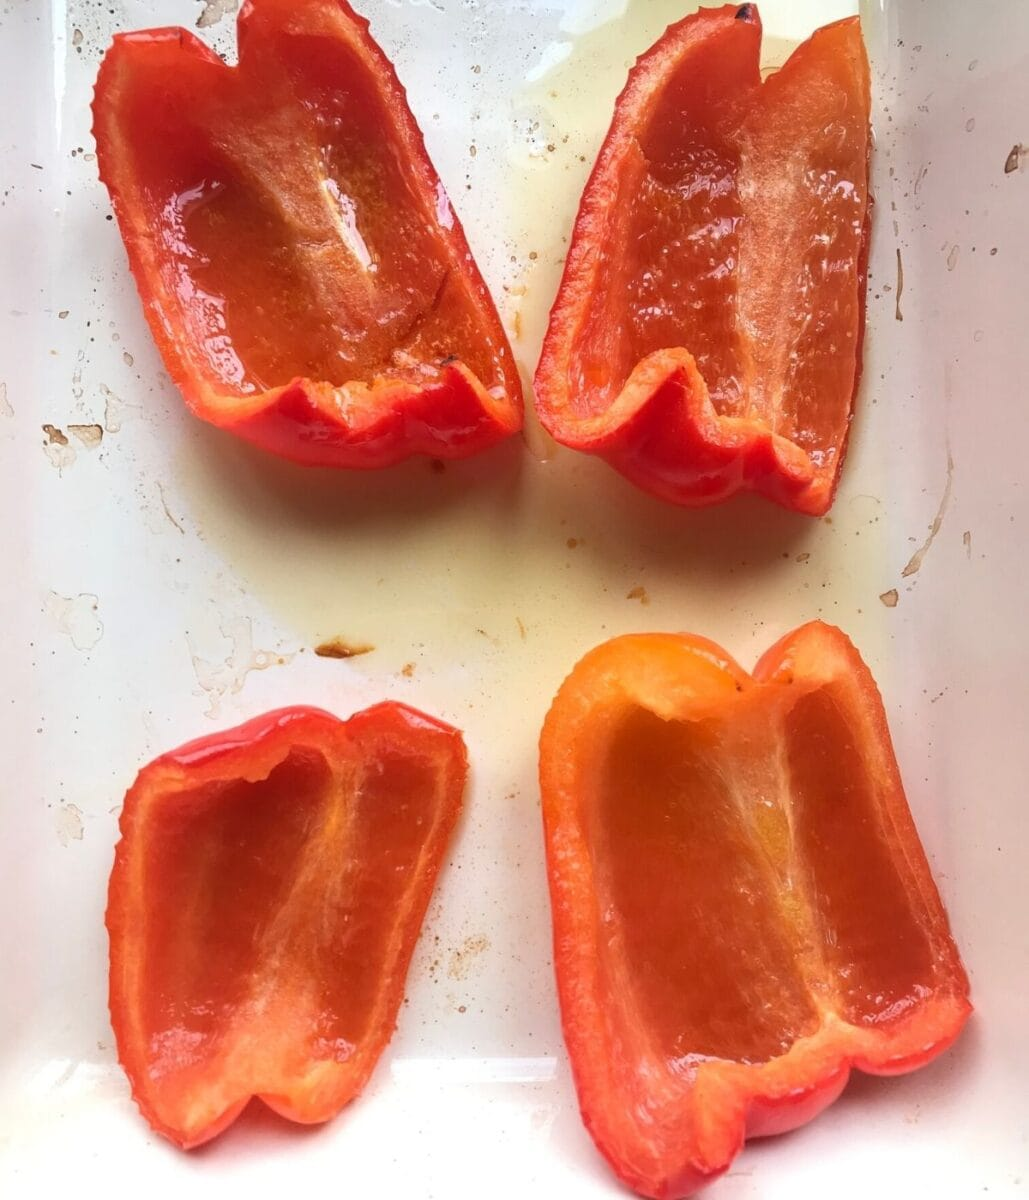 Grilled red bell peppers in pan with olive oil.